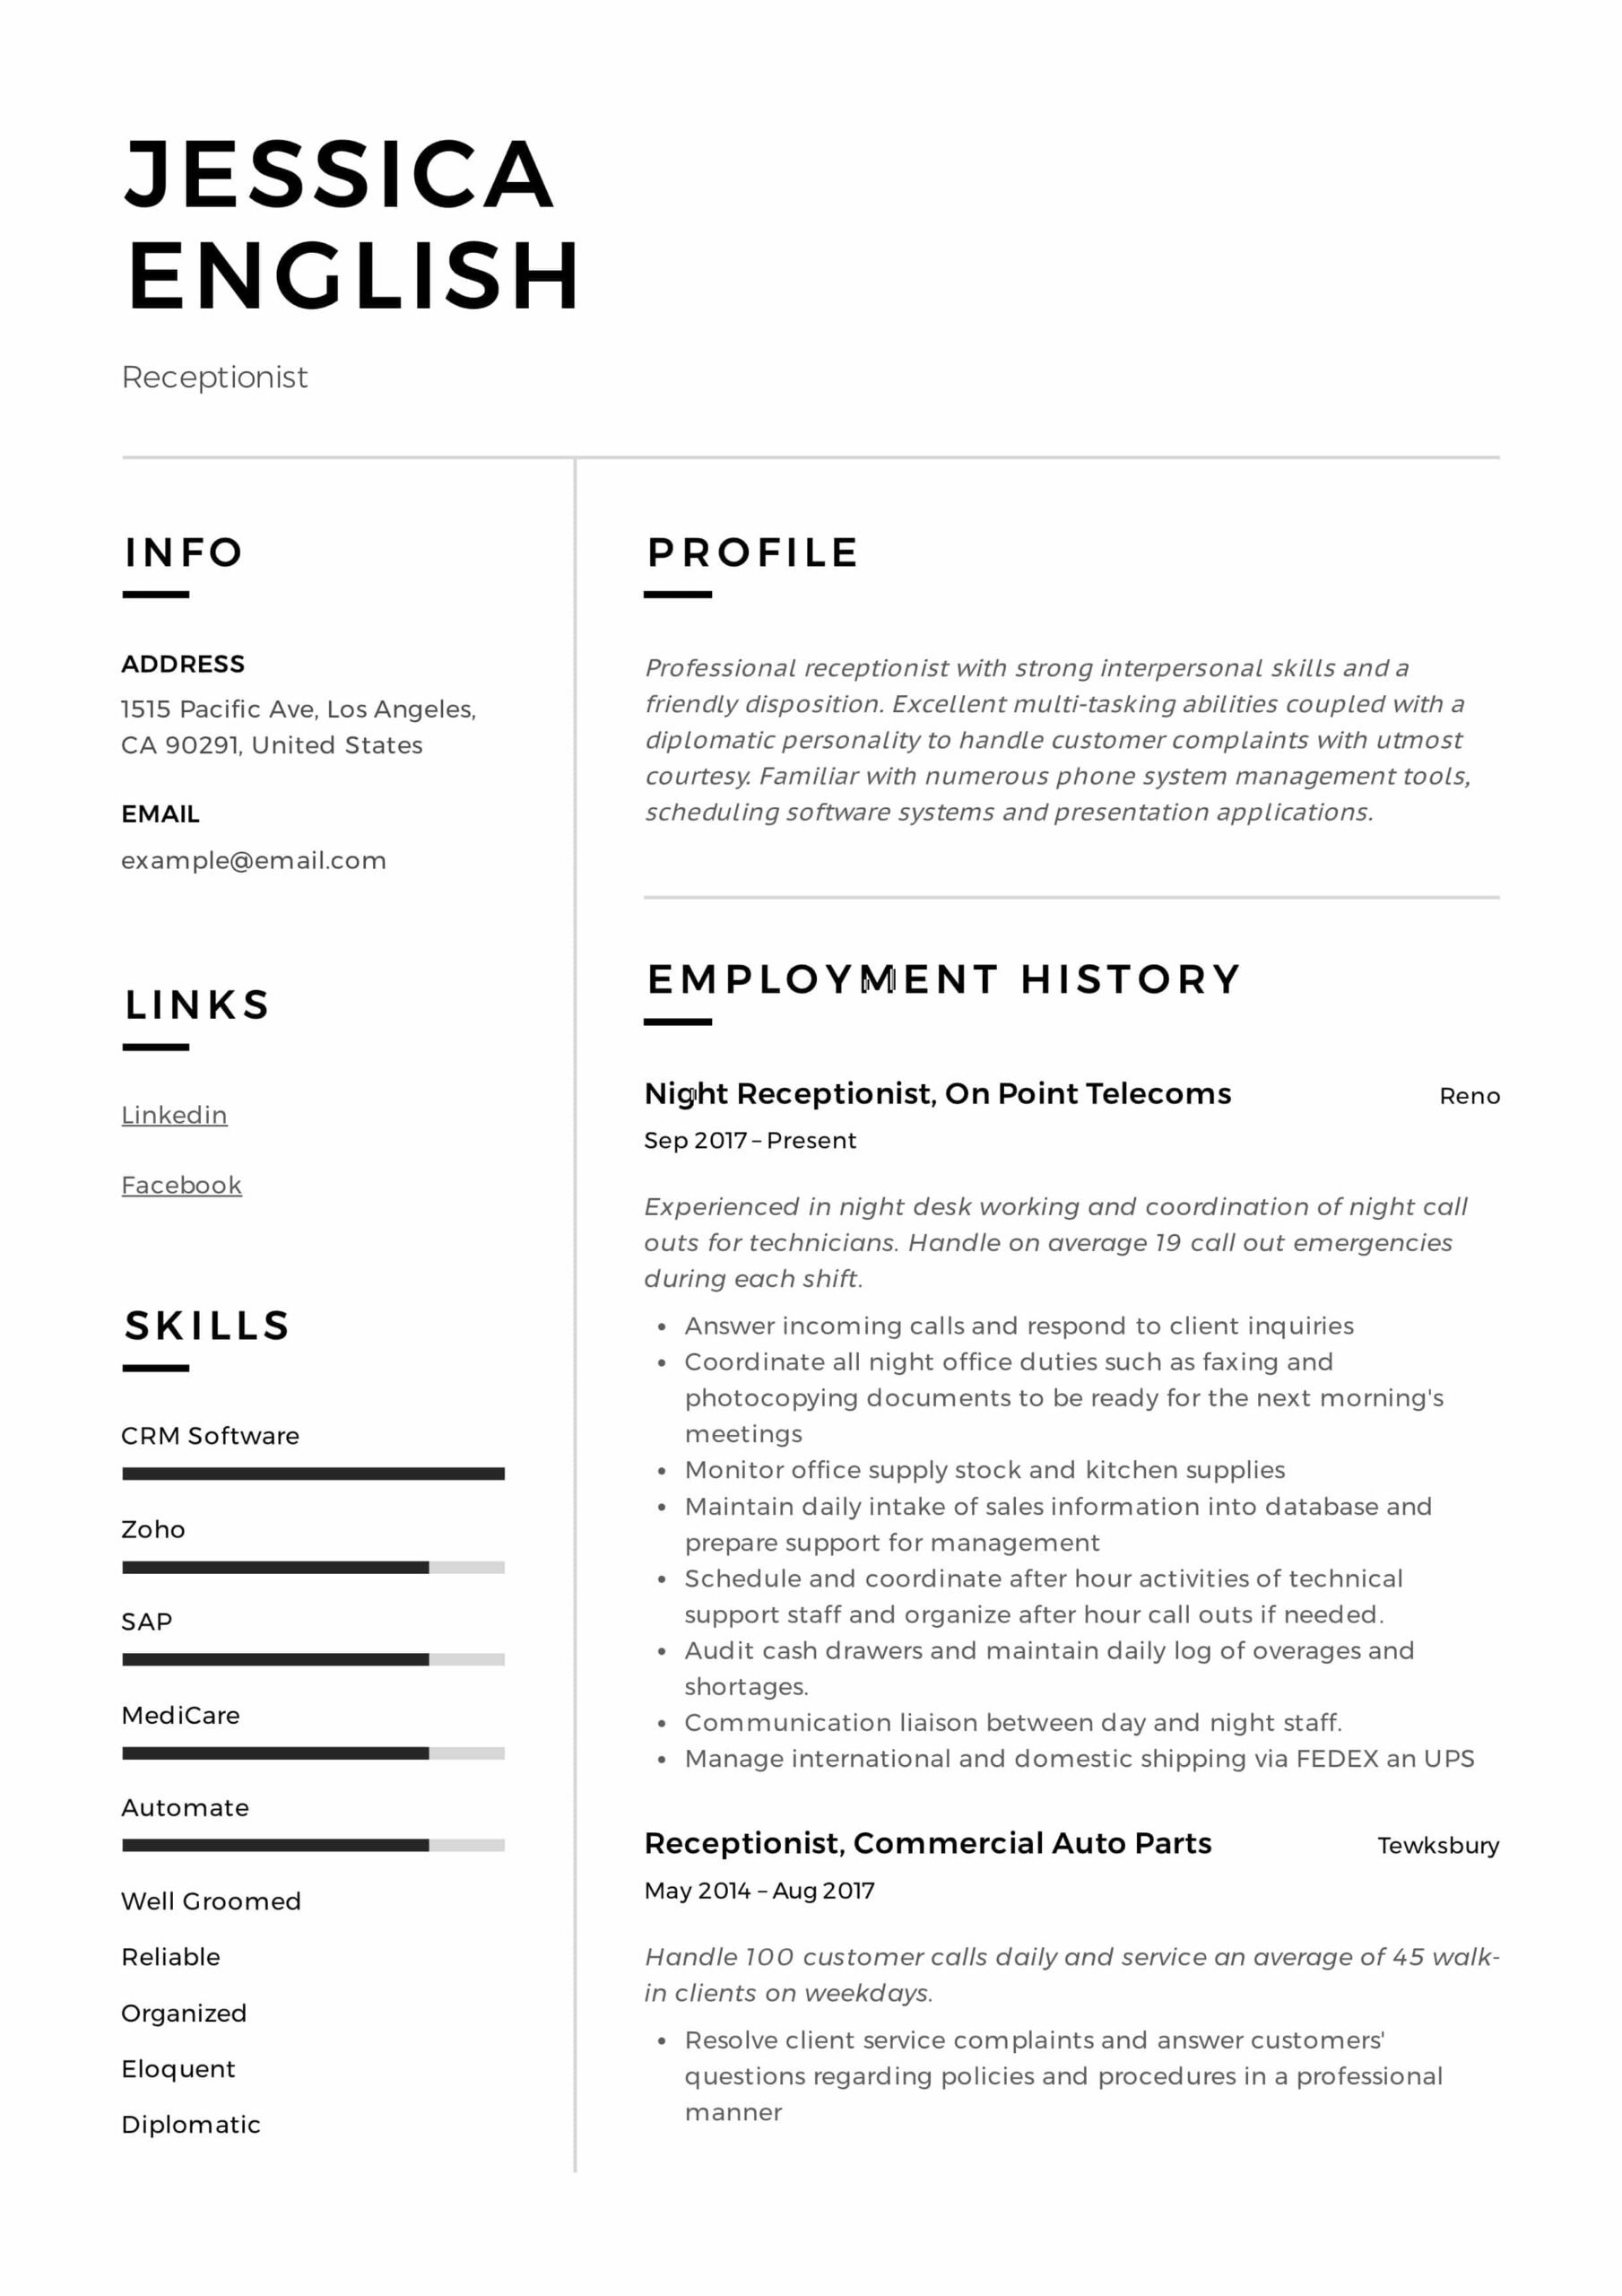 receptionist resume example writing guide samples pdf best jessica english sample for job Resume Best Receptionist Resume